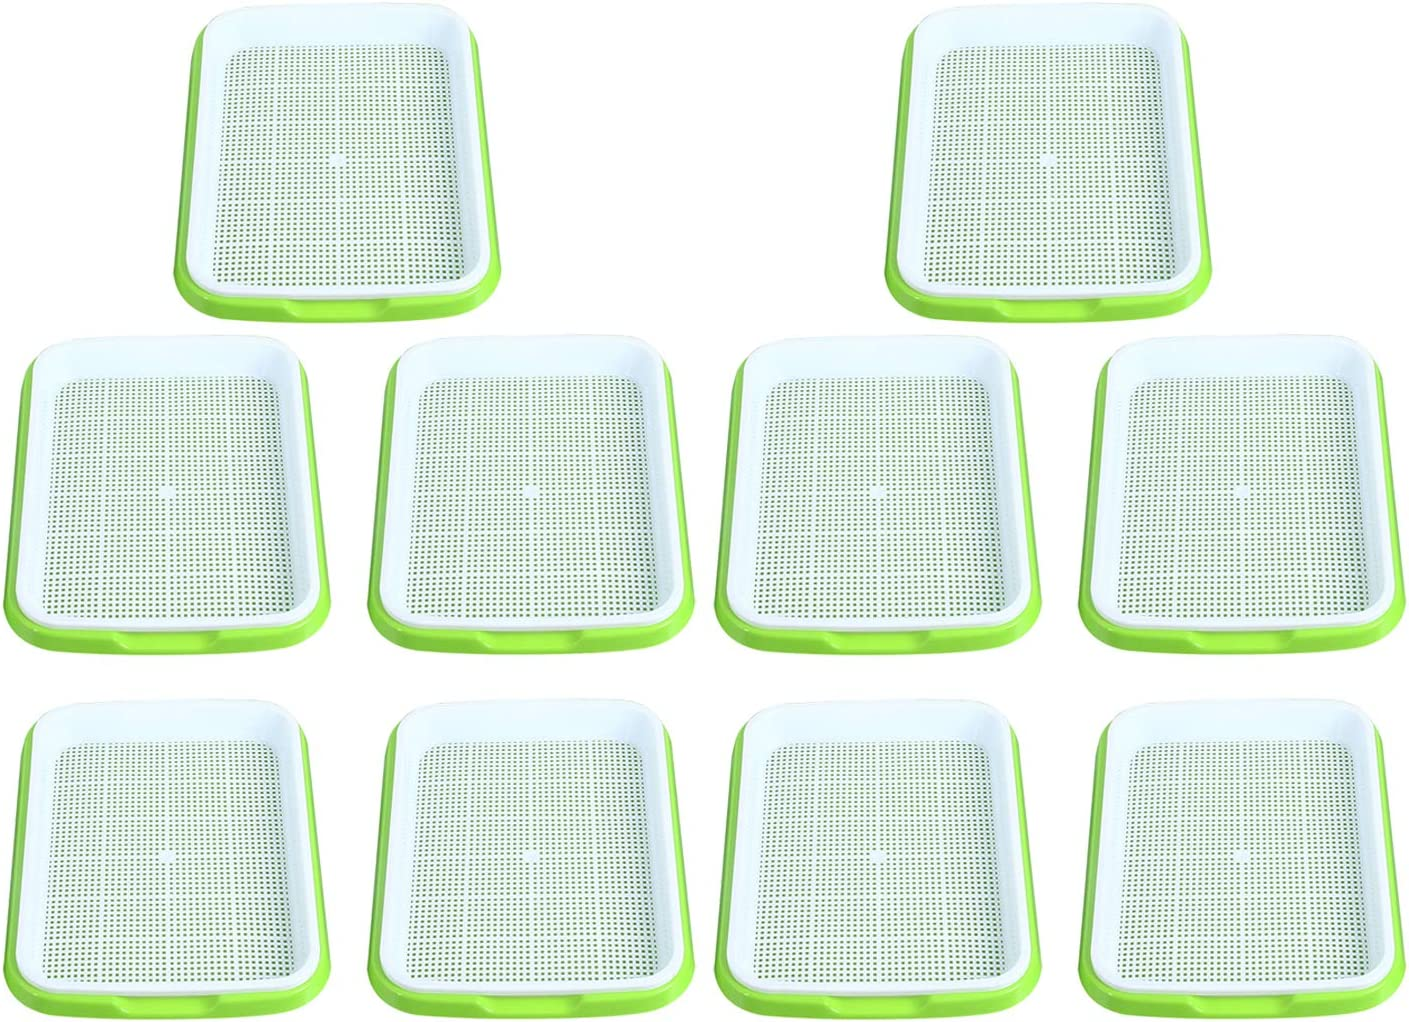 Homend Seed Sprouter Tray, Seed Germination Tray BPA Free Nursery Tray for Seedling Planting Great for for Garden Home Office (10)